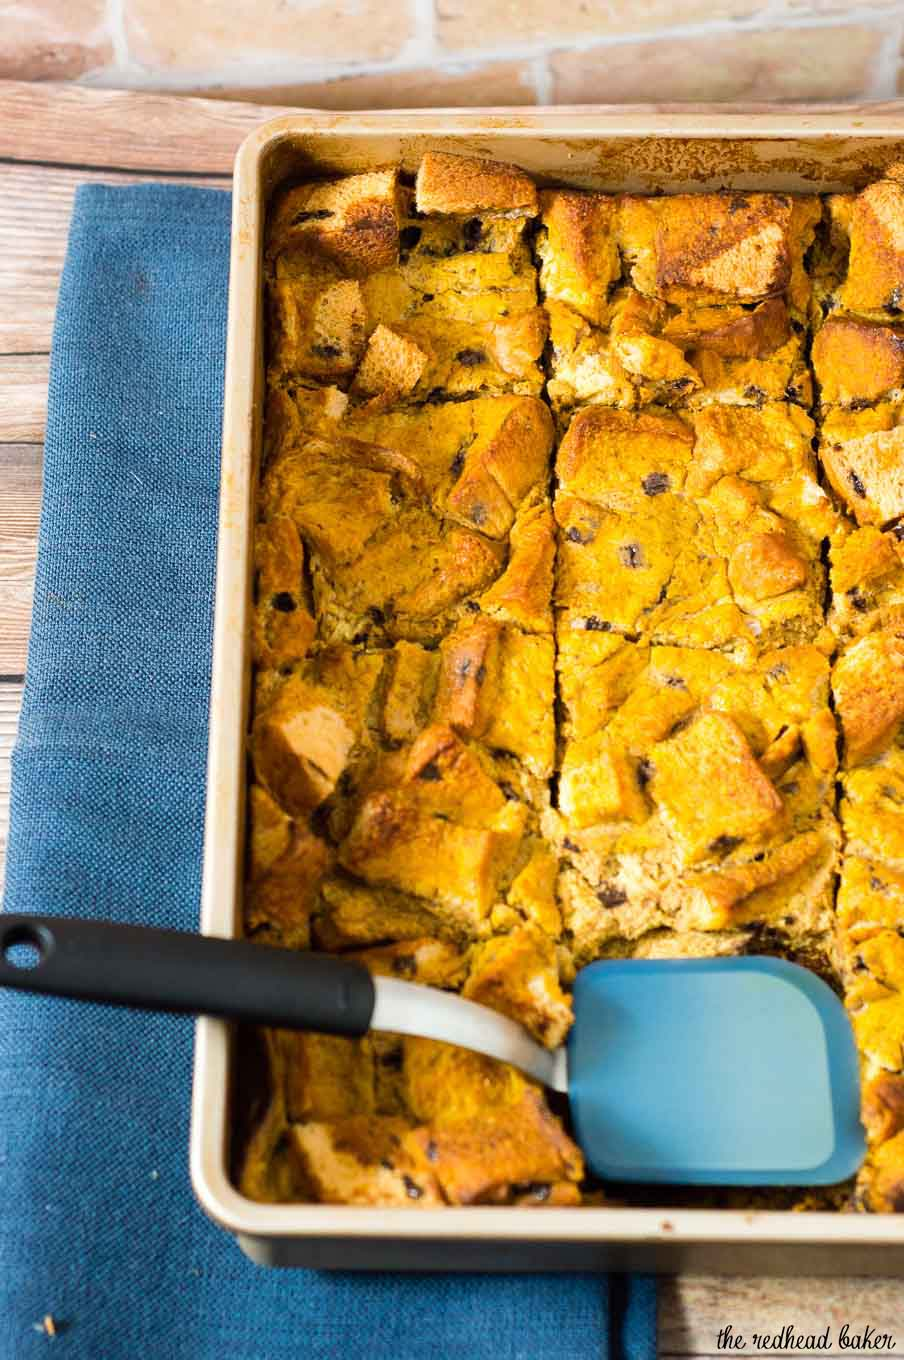 Pumpkin chocolate chip brioche bread pudding is a warm, comforting fall dessert, perfect for the holidays or any chilly night. Top with vanilla ice cream or caramel sauce.